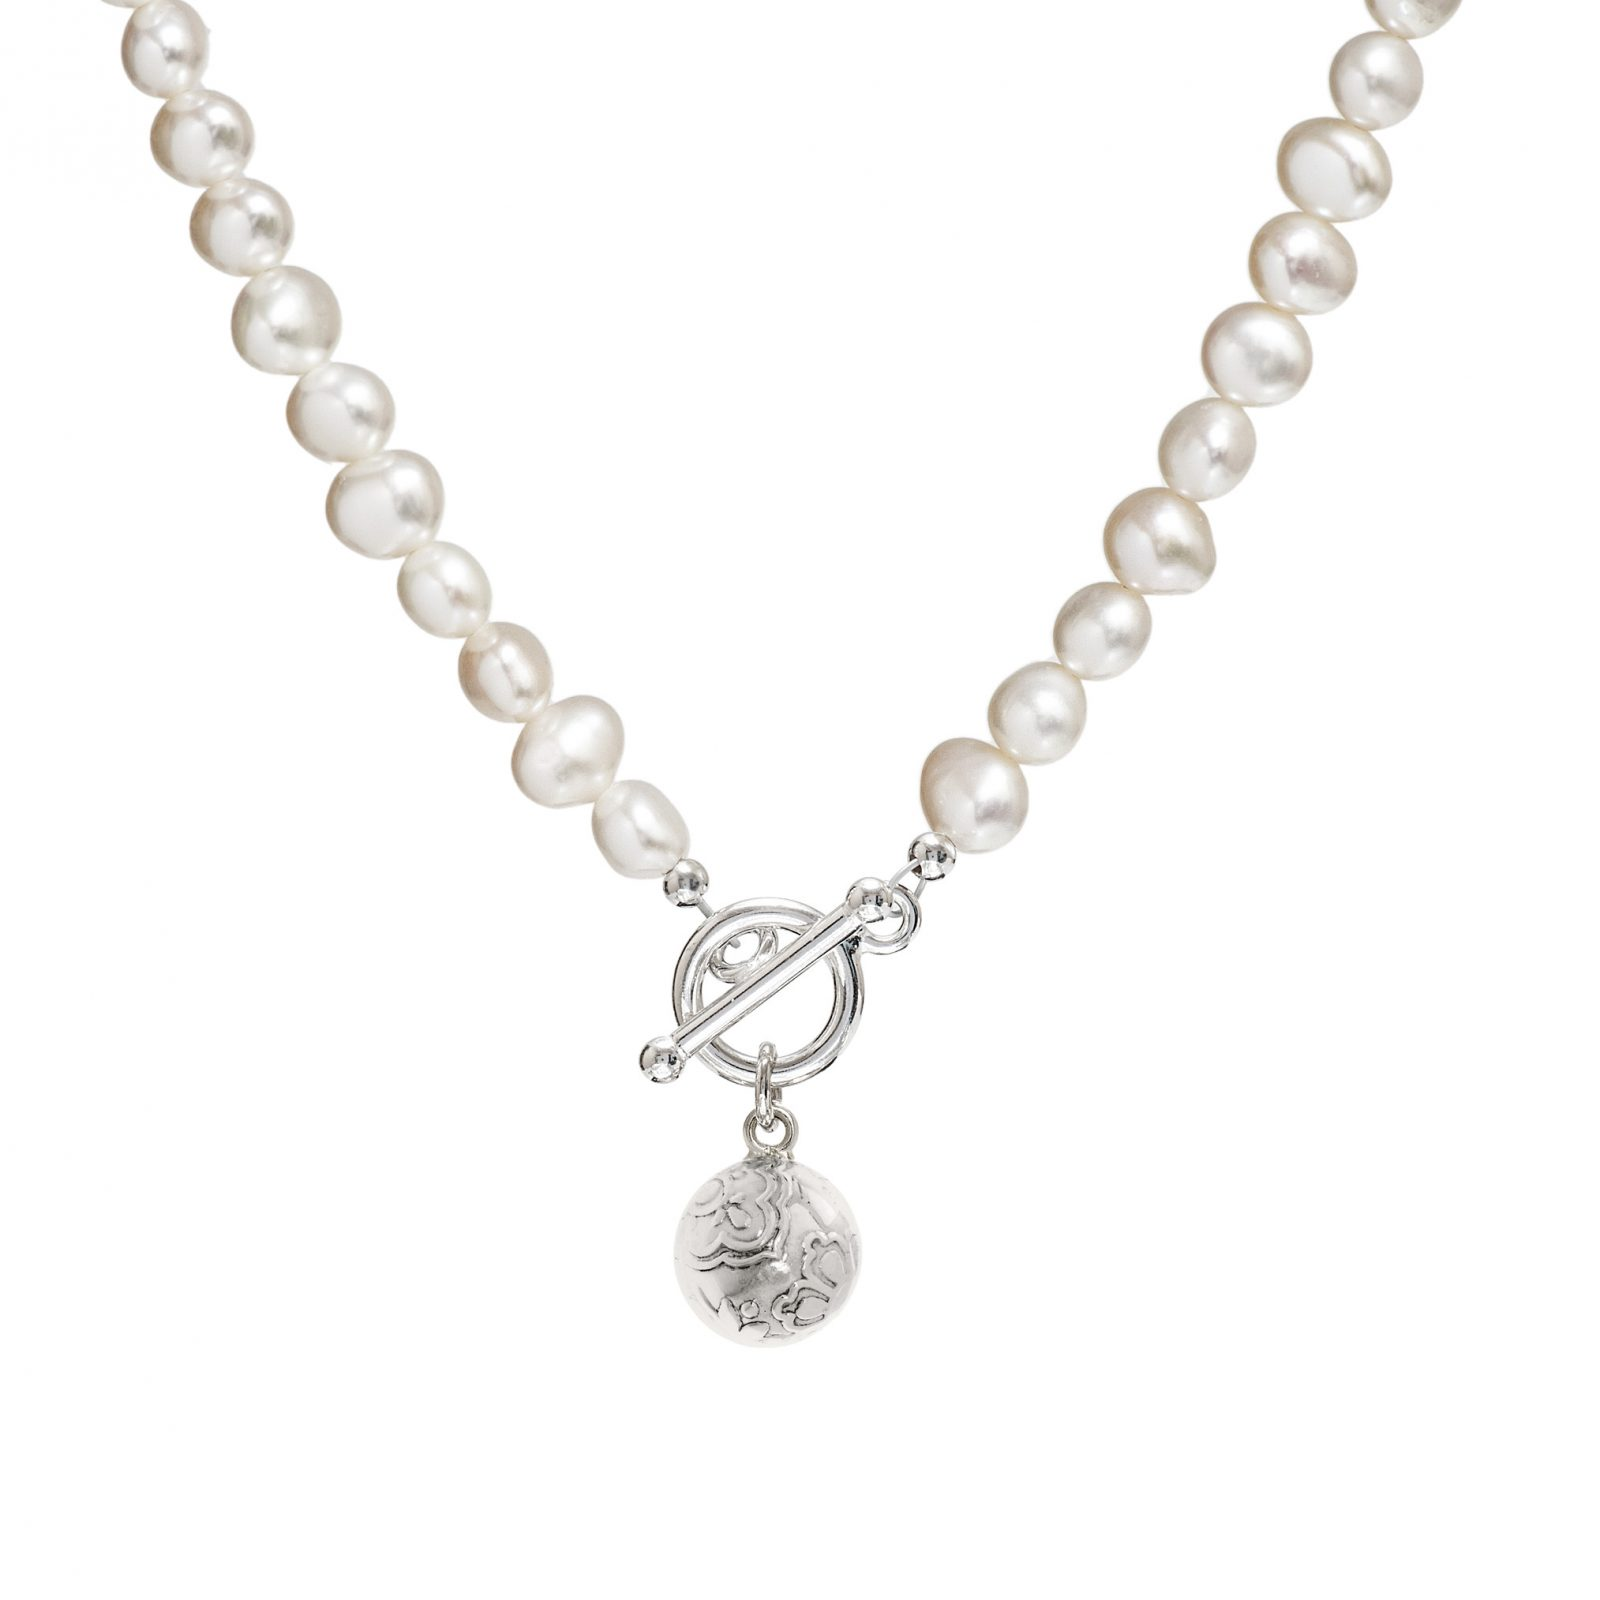 freshwater pearl necklace with silver charm